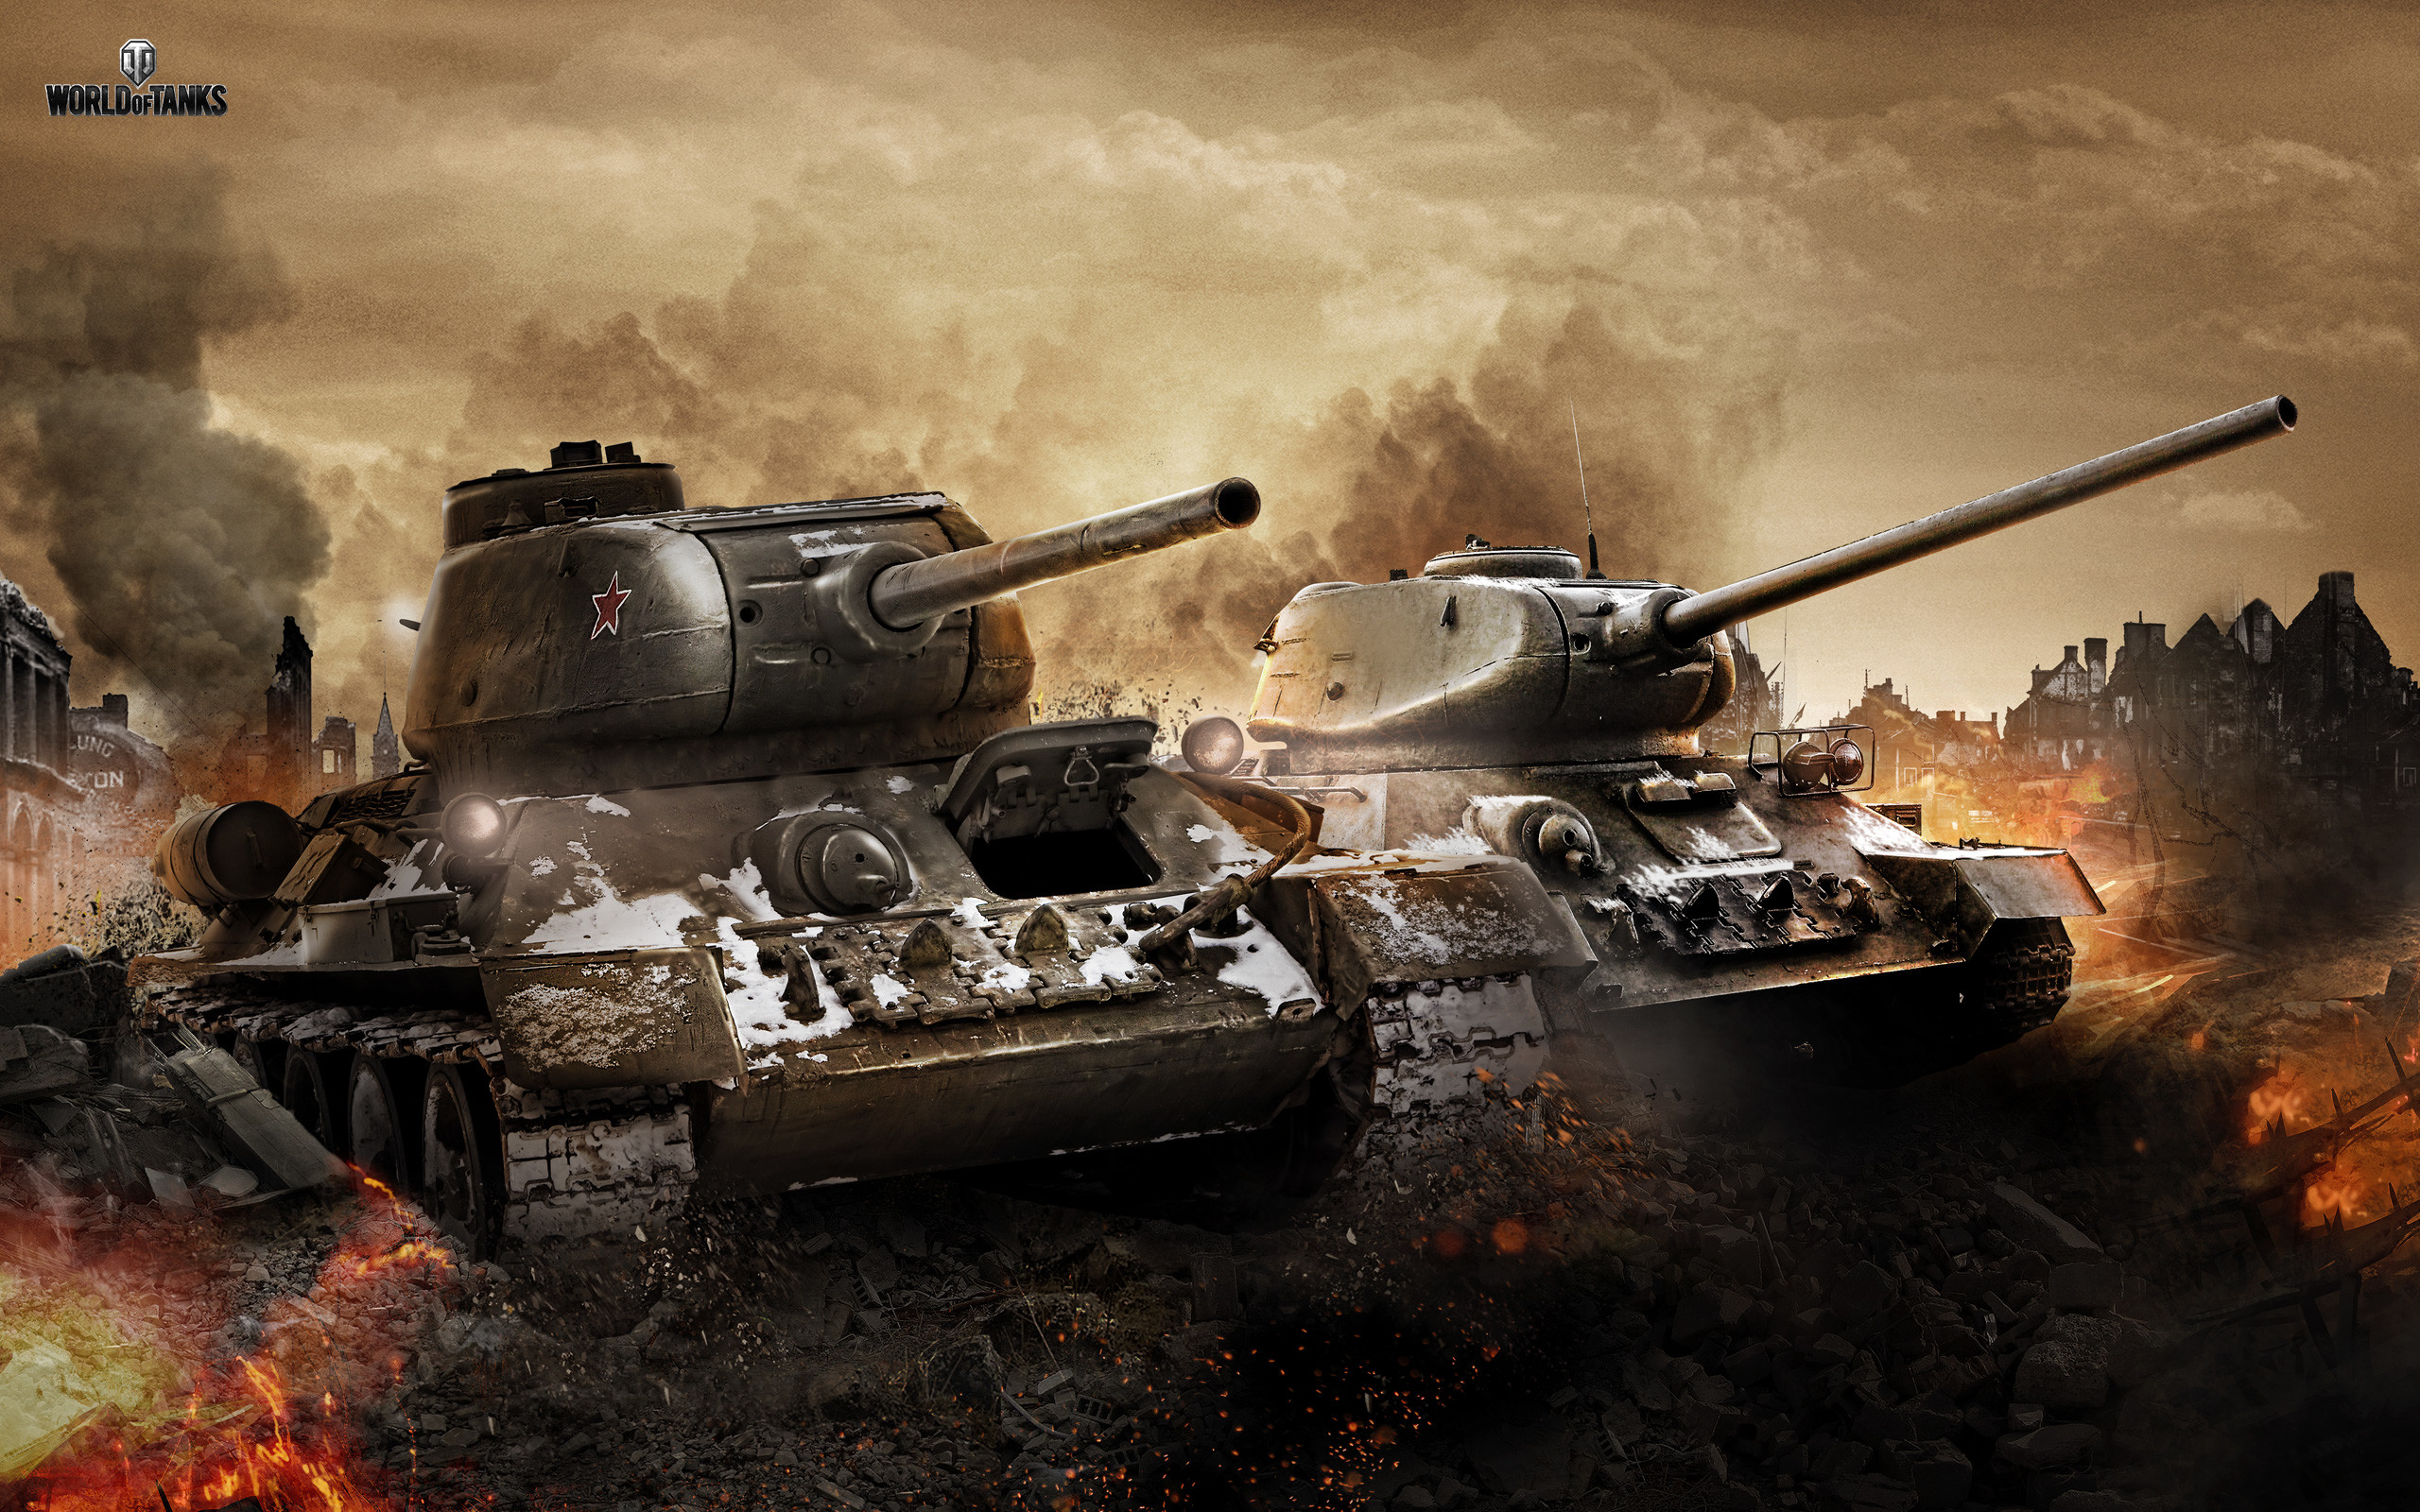 2560x1600 34 & T 34 85 in World of Tanks Wallpapers | HD Wallpapers